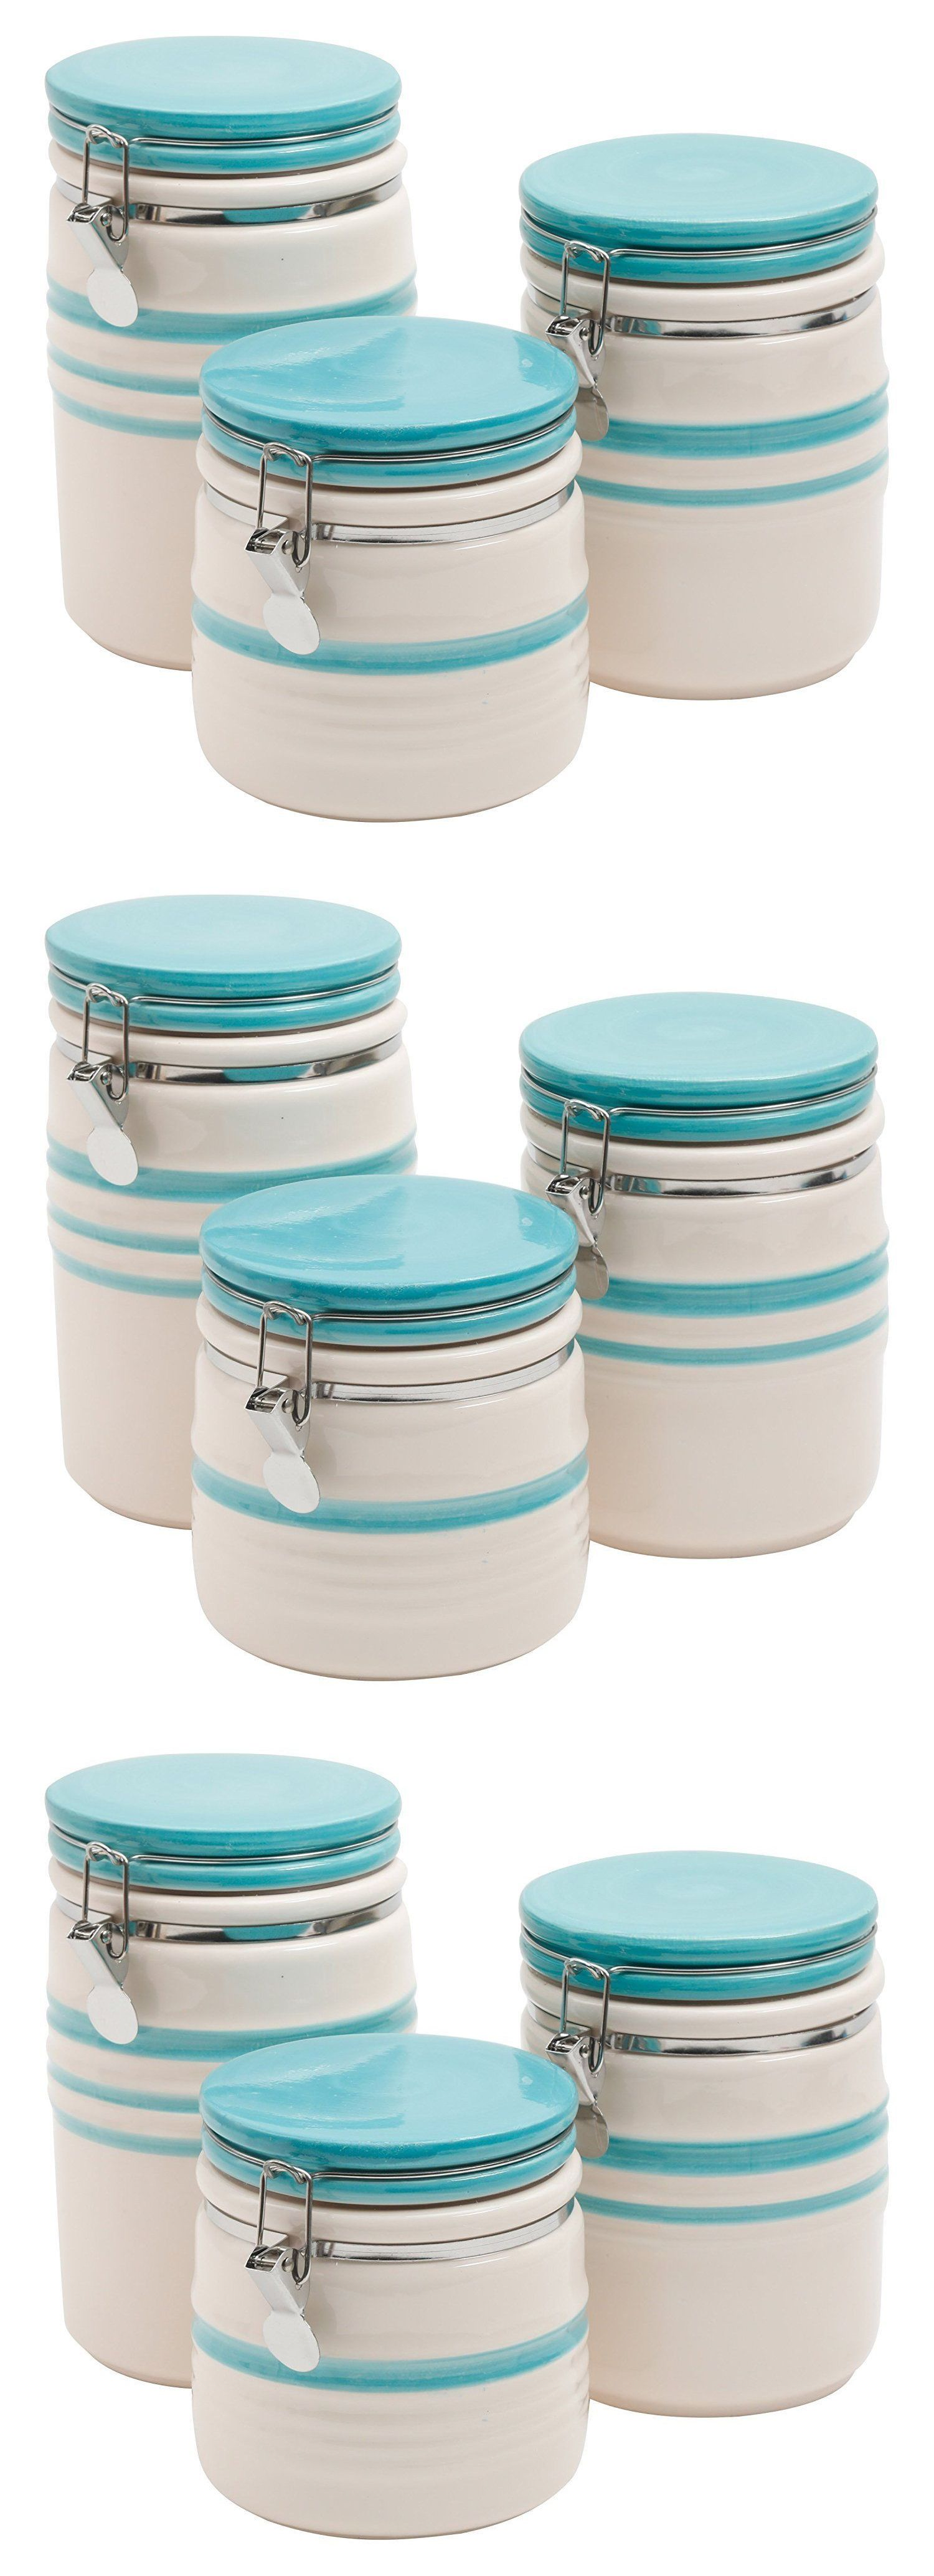 Canisters and Jars 20654: 3 Piece Canister Set Food Storage Kitchen ...